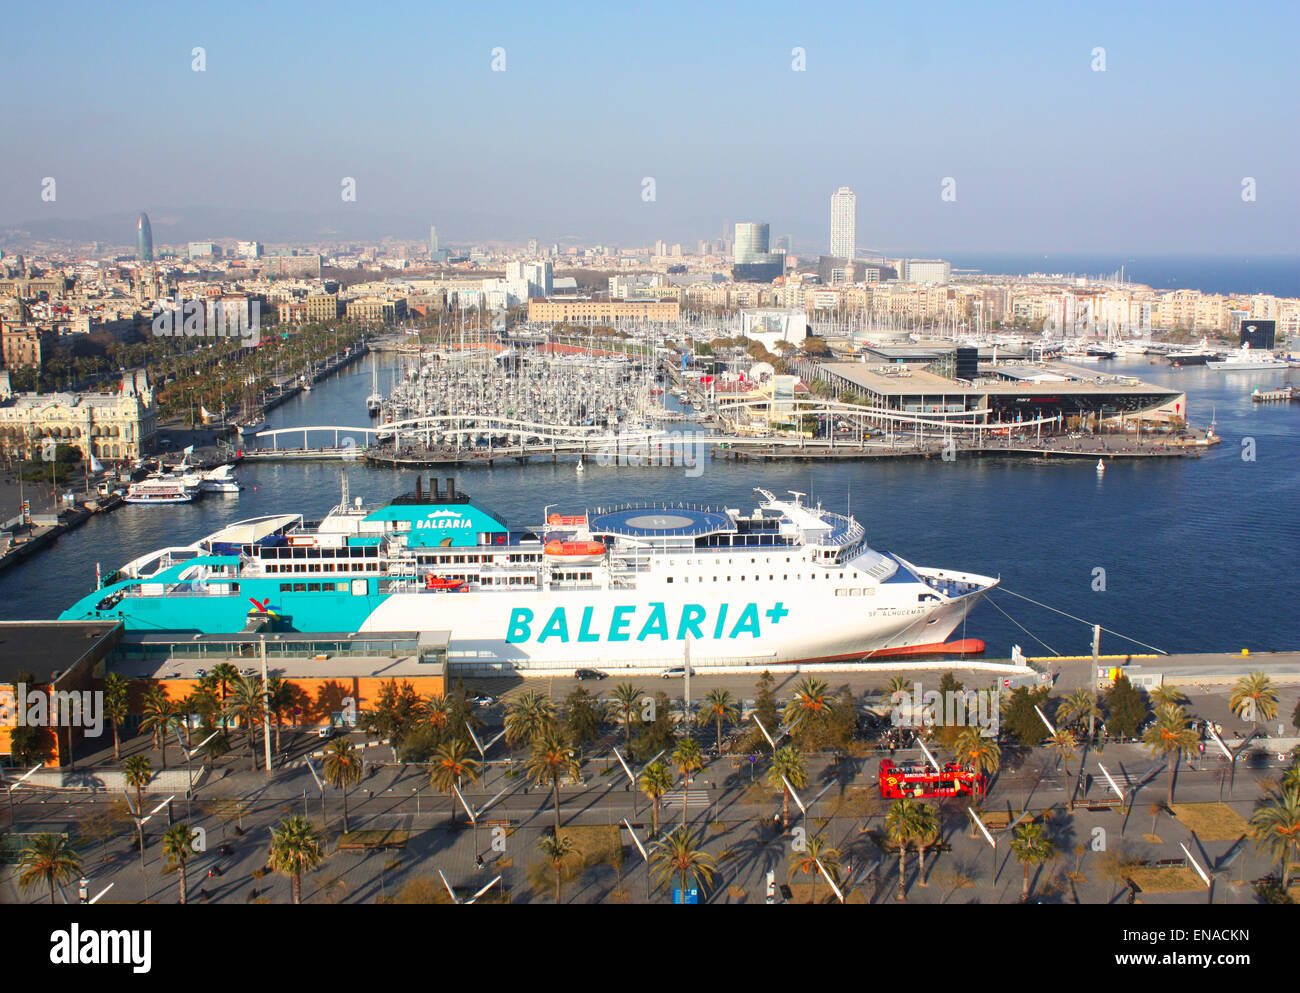 Balearia ship in Barcelona, Spain harbour Stock Photo